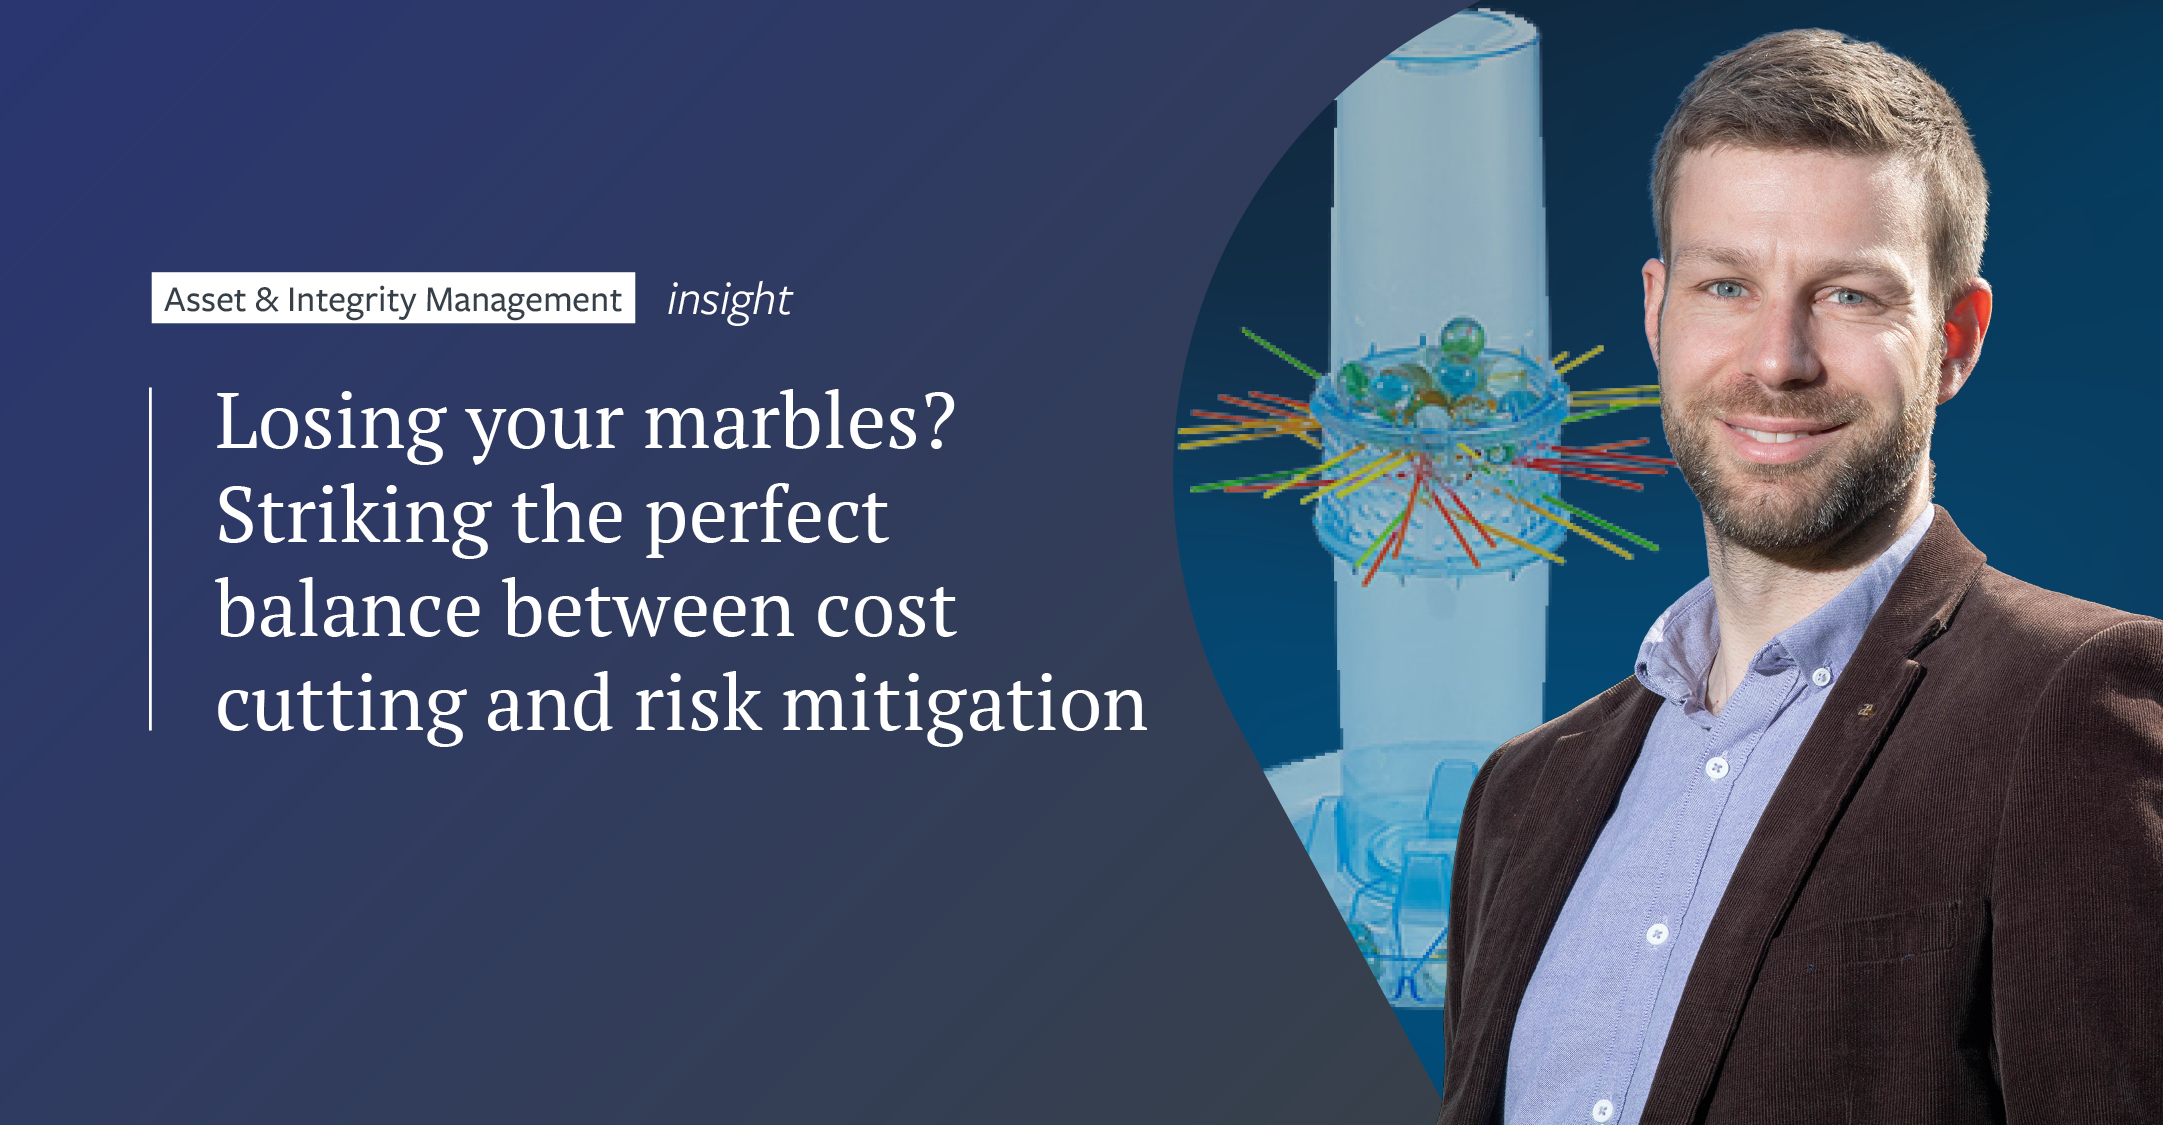 Losing your marbles? Striking the perfect balance between cost cutting and risk mitigation